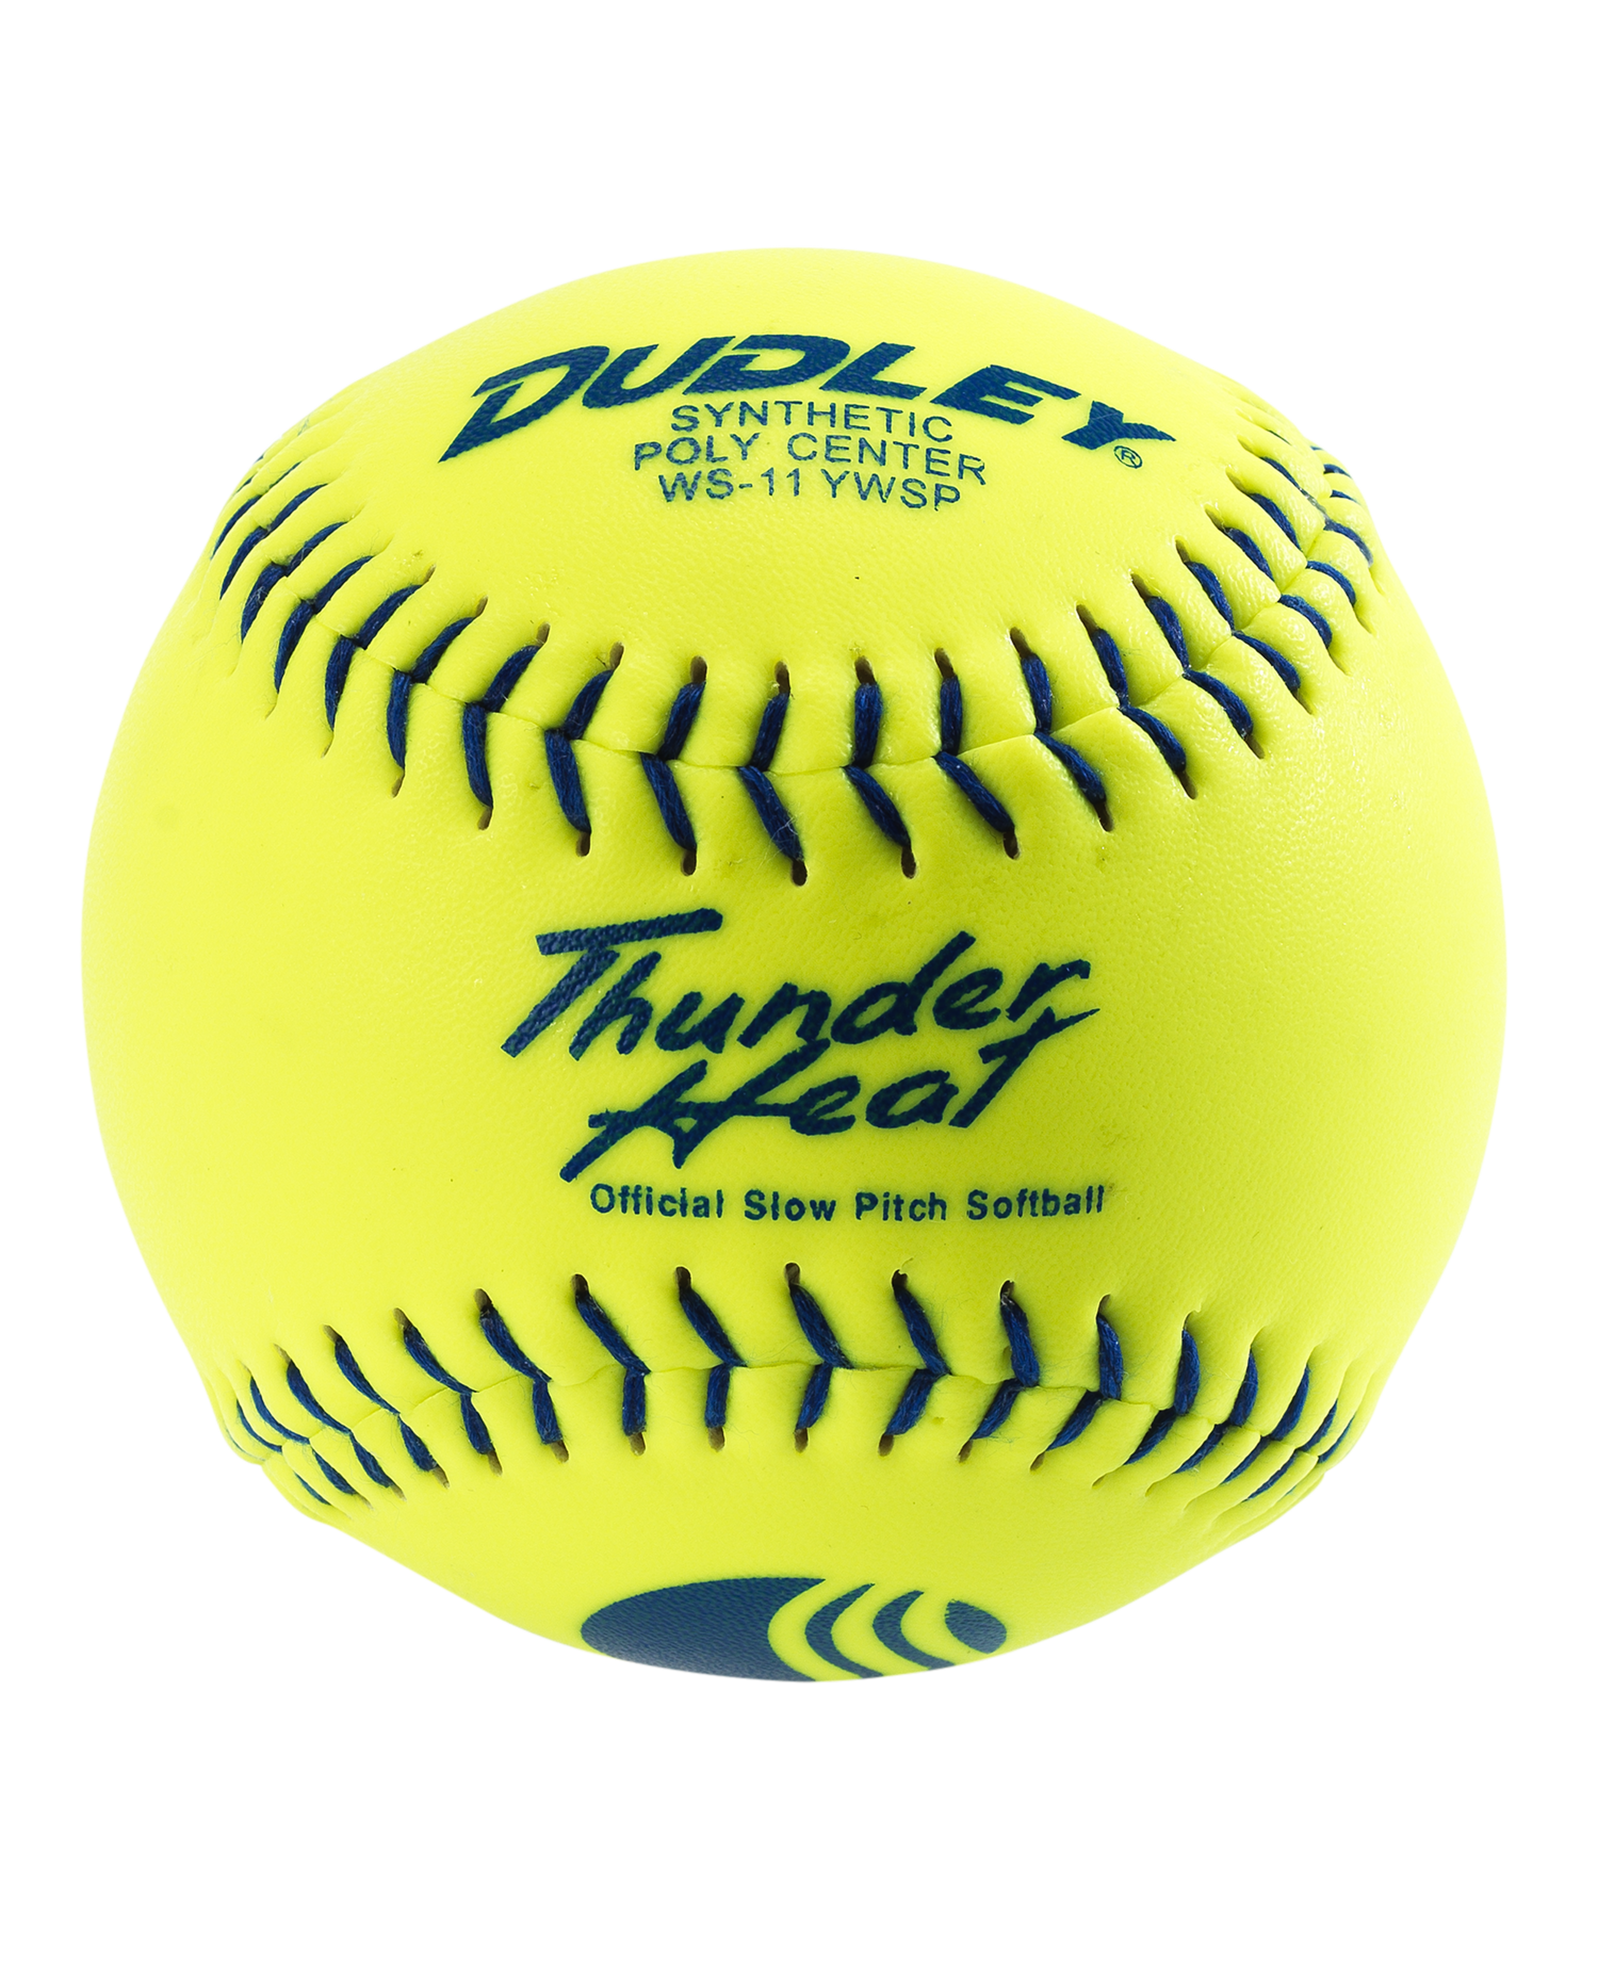 Png transparent images thunder. Softball clipart slow pitch softball